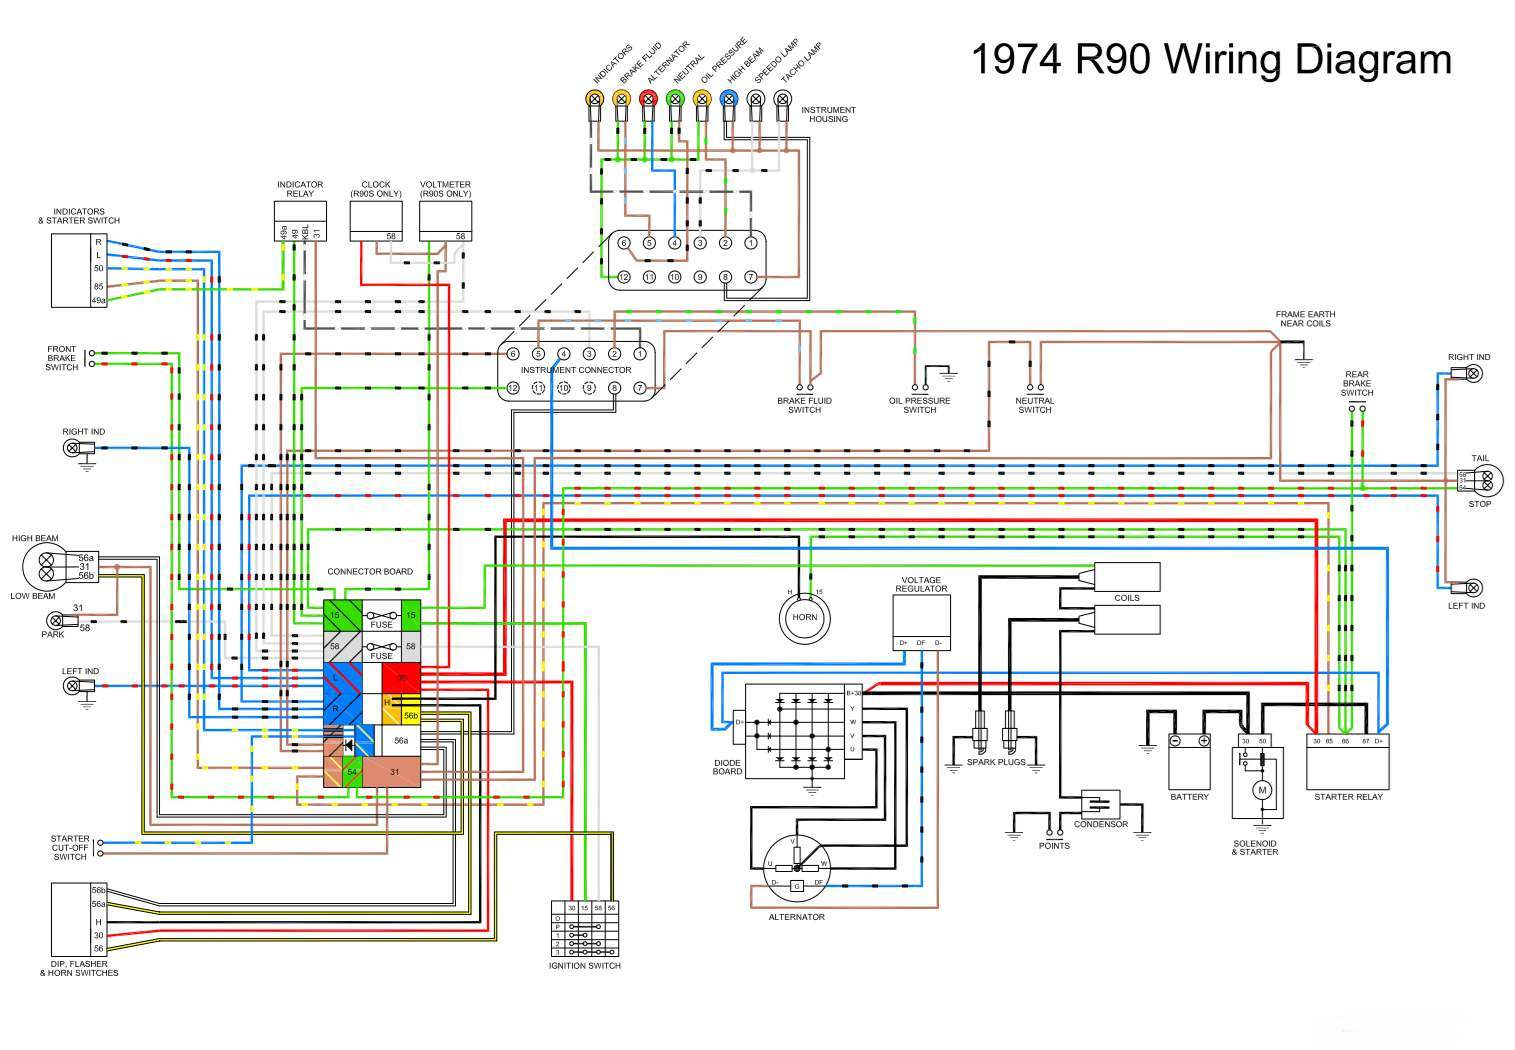 2008 Big Dog Wiring Diagram Just Wirings 2003 American Iron Horse Ironhorse Schematic 2005 Harness Motorcycle